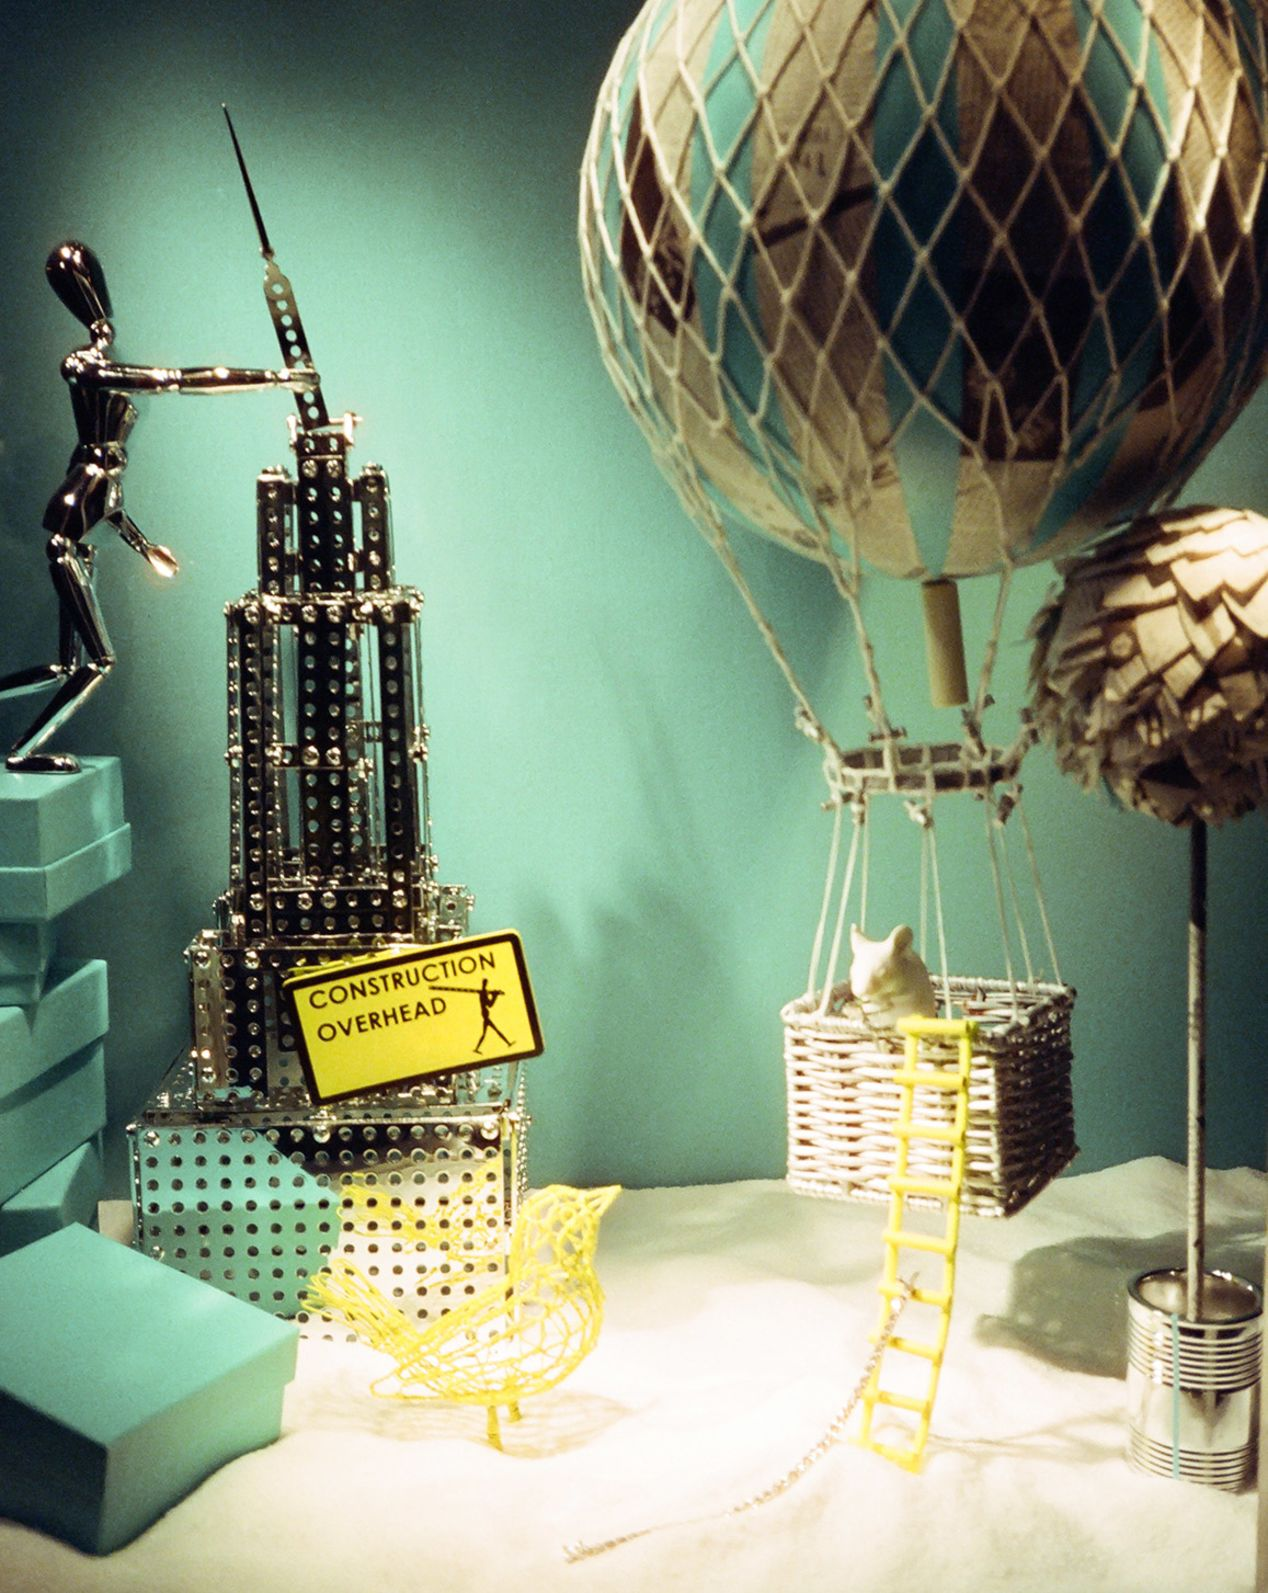 Window Display at Tiffany's in Beverly Hills, California.